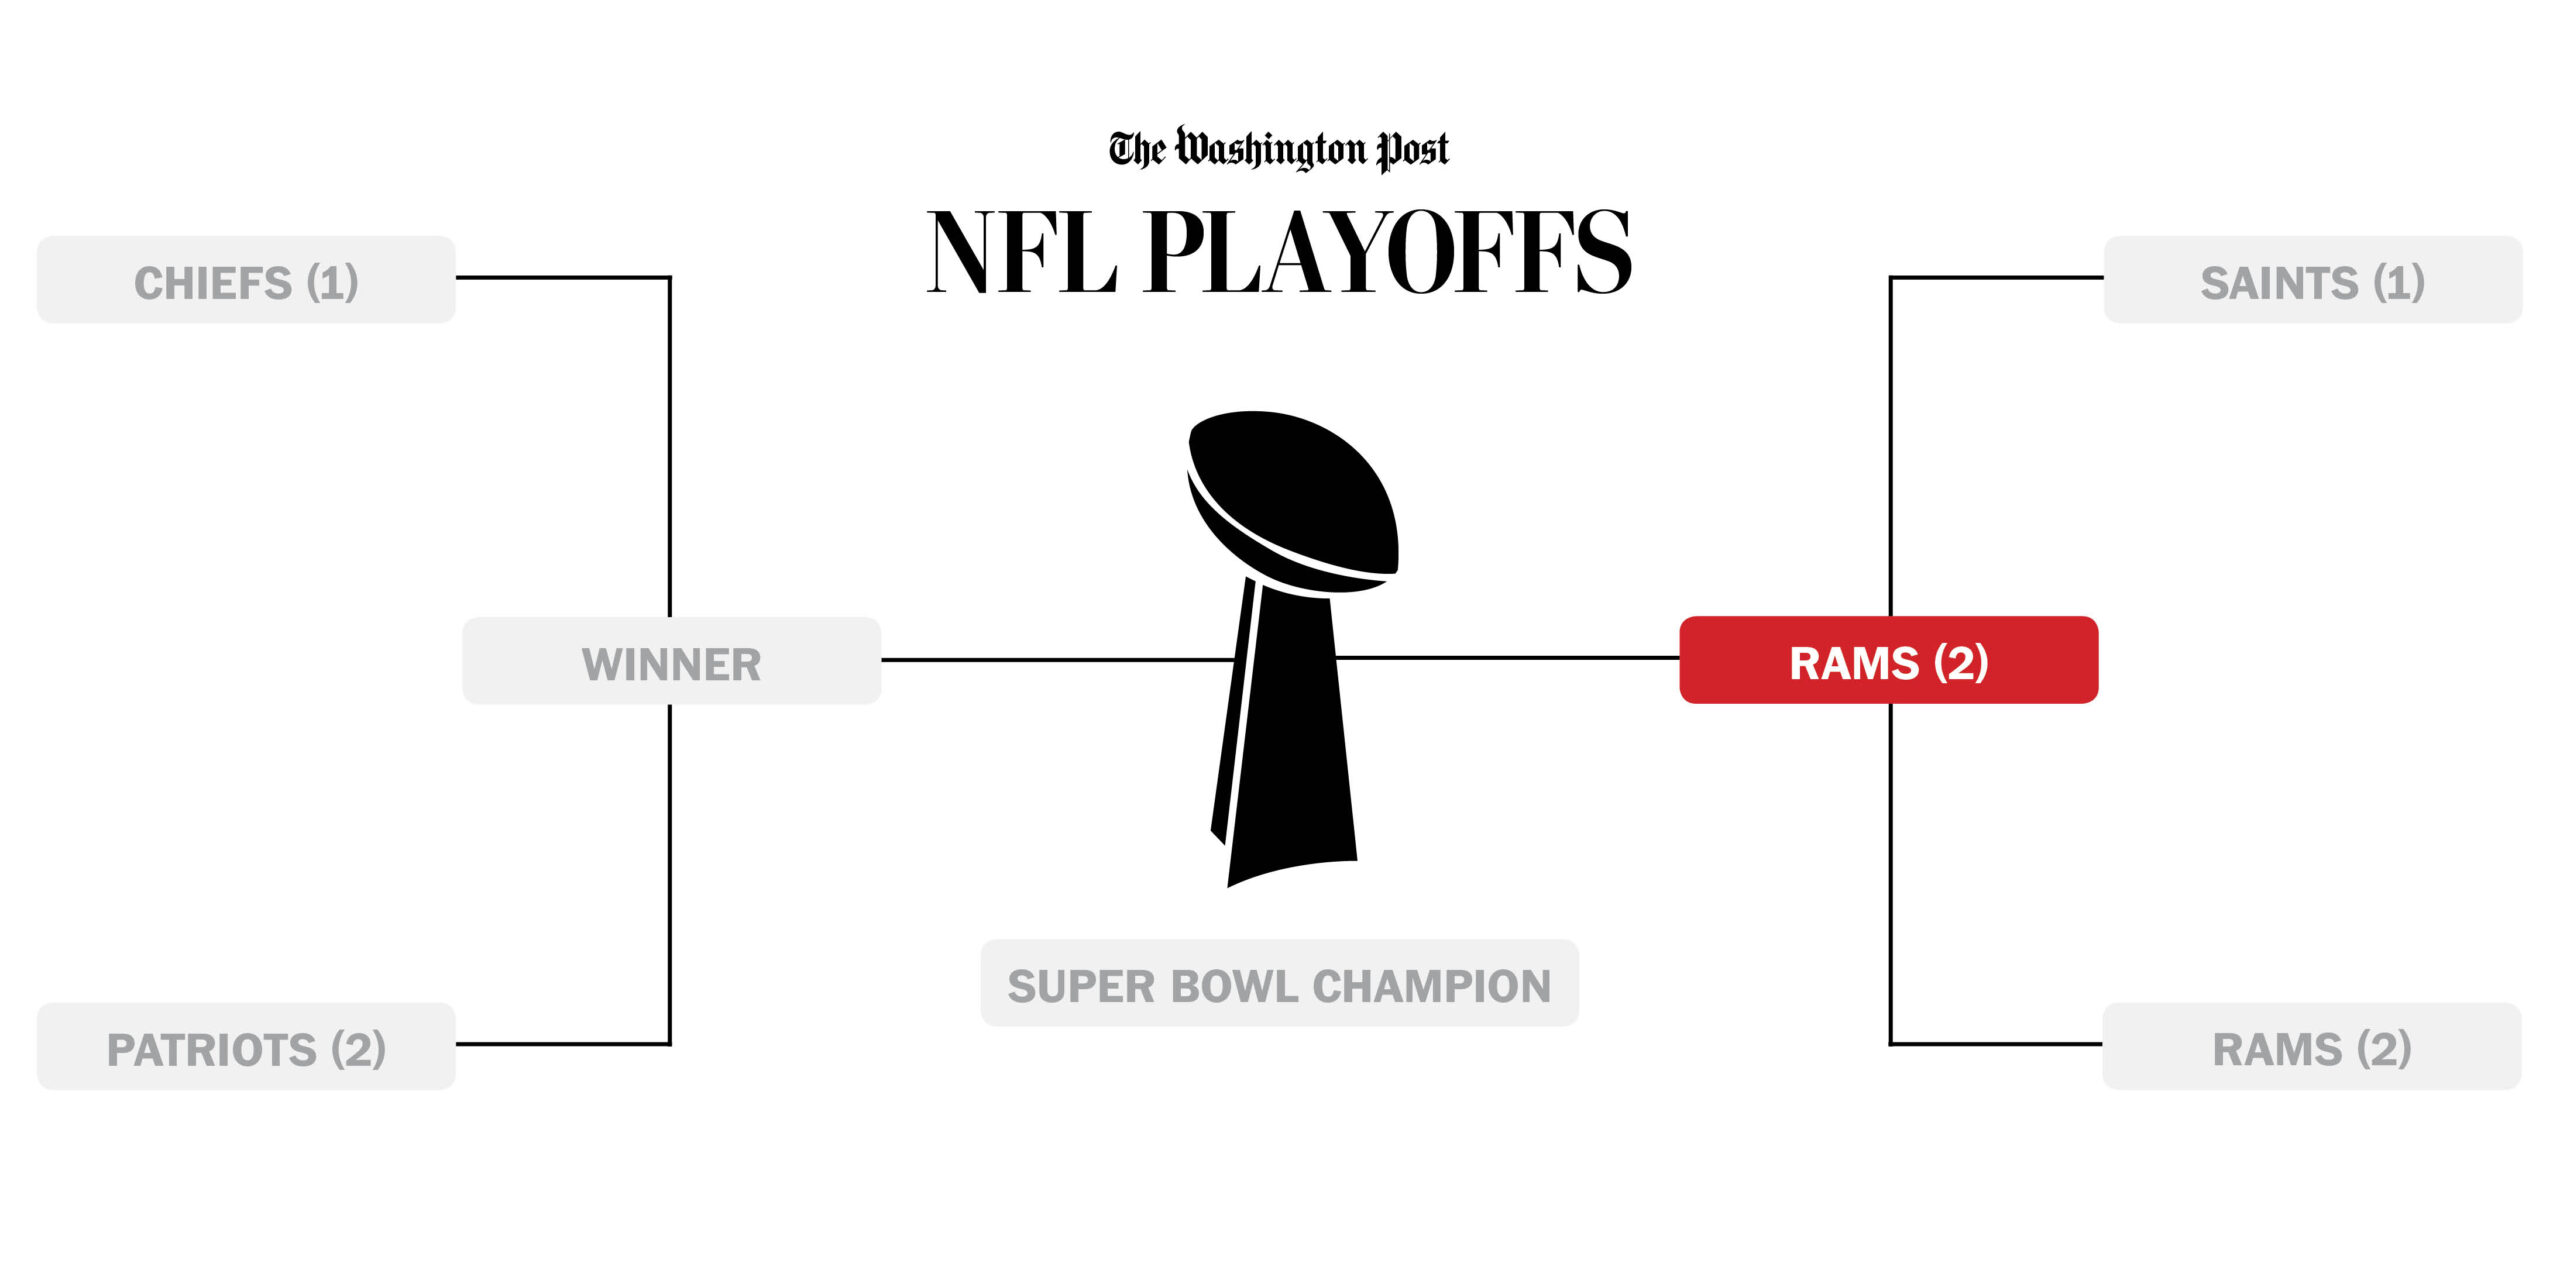 Who Will Play In The Super Bowl? - The Washington Post